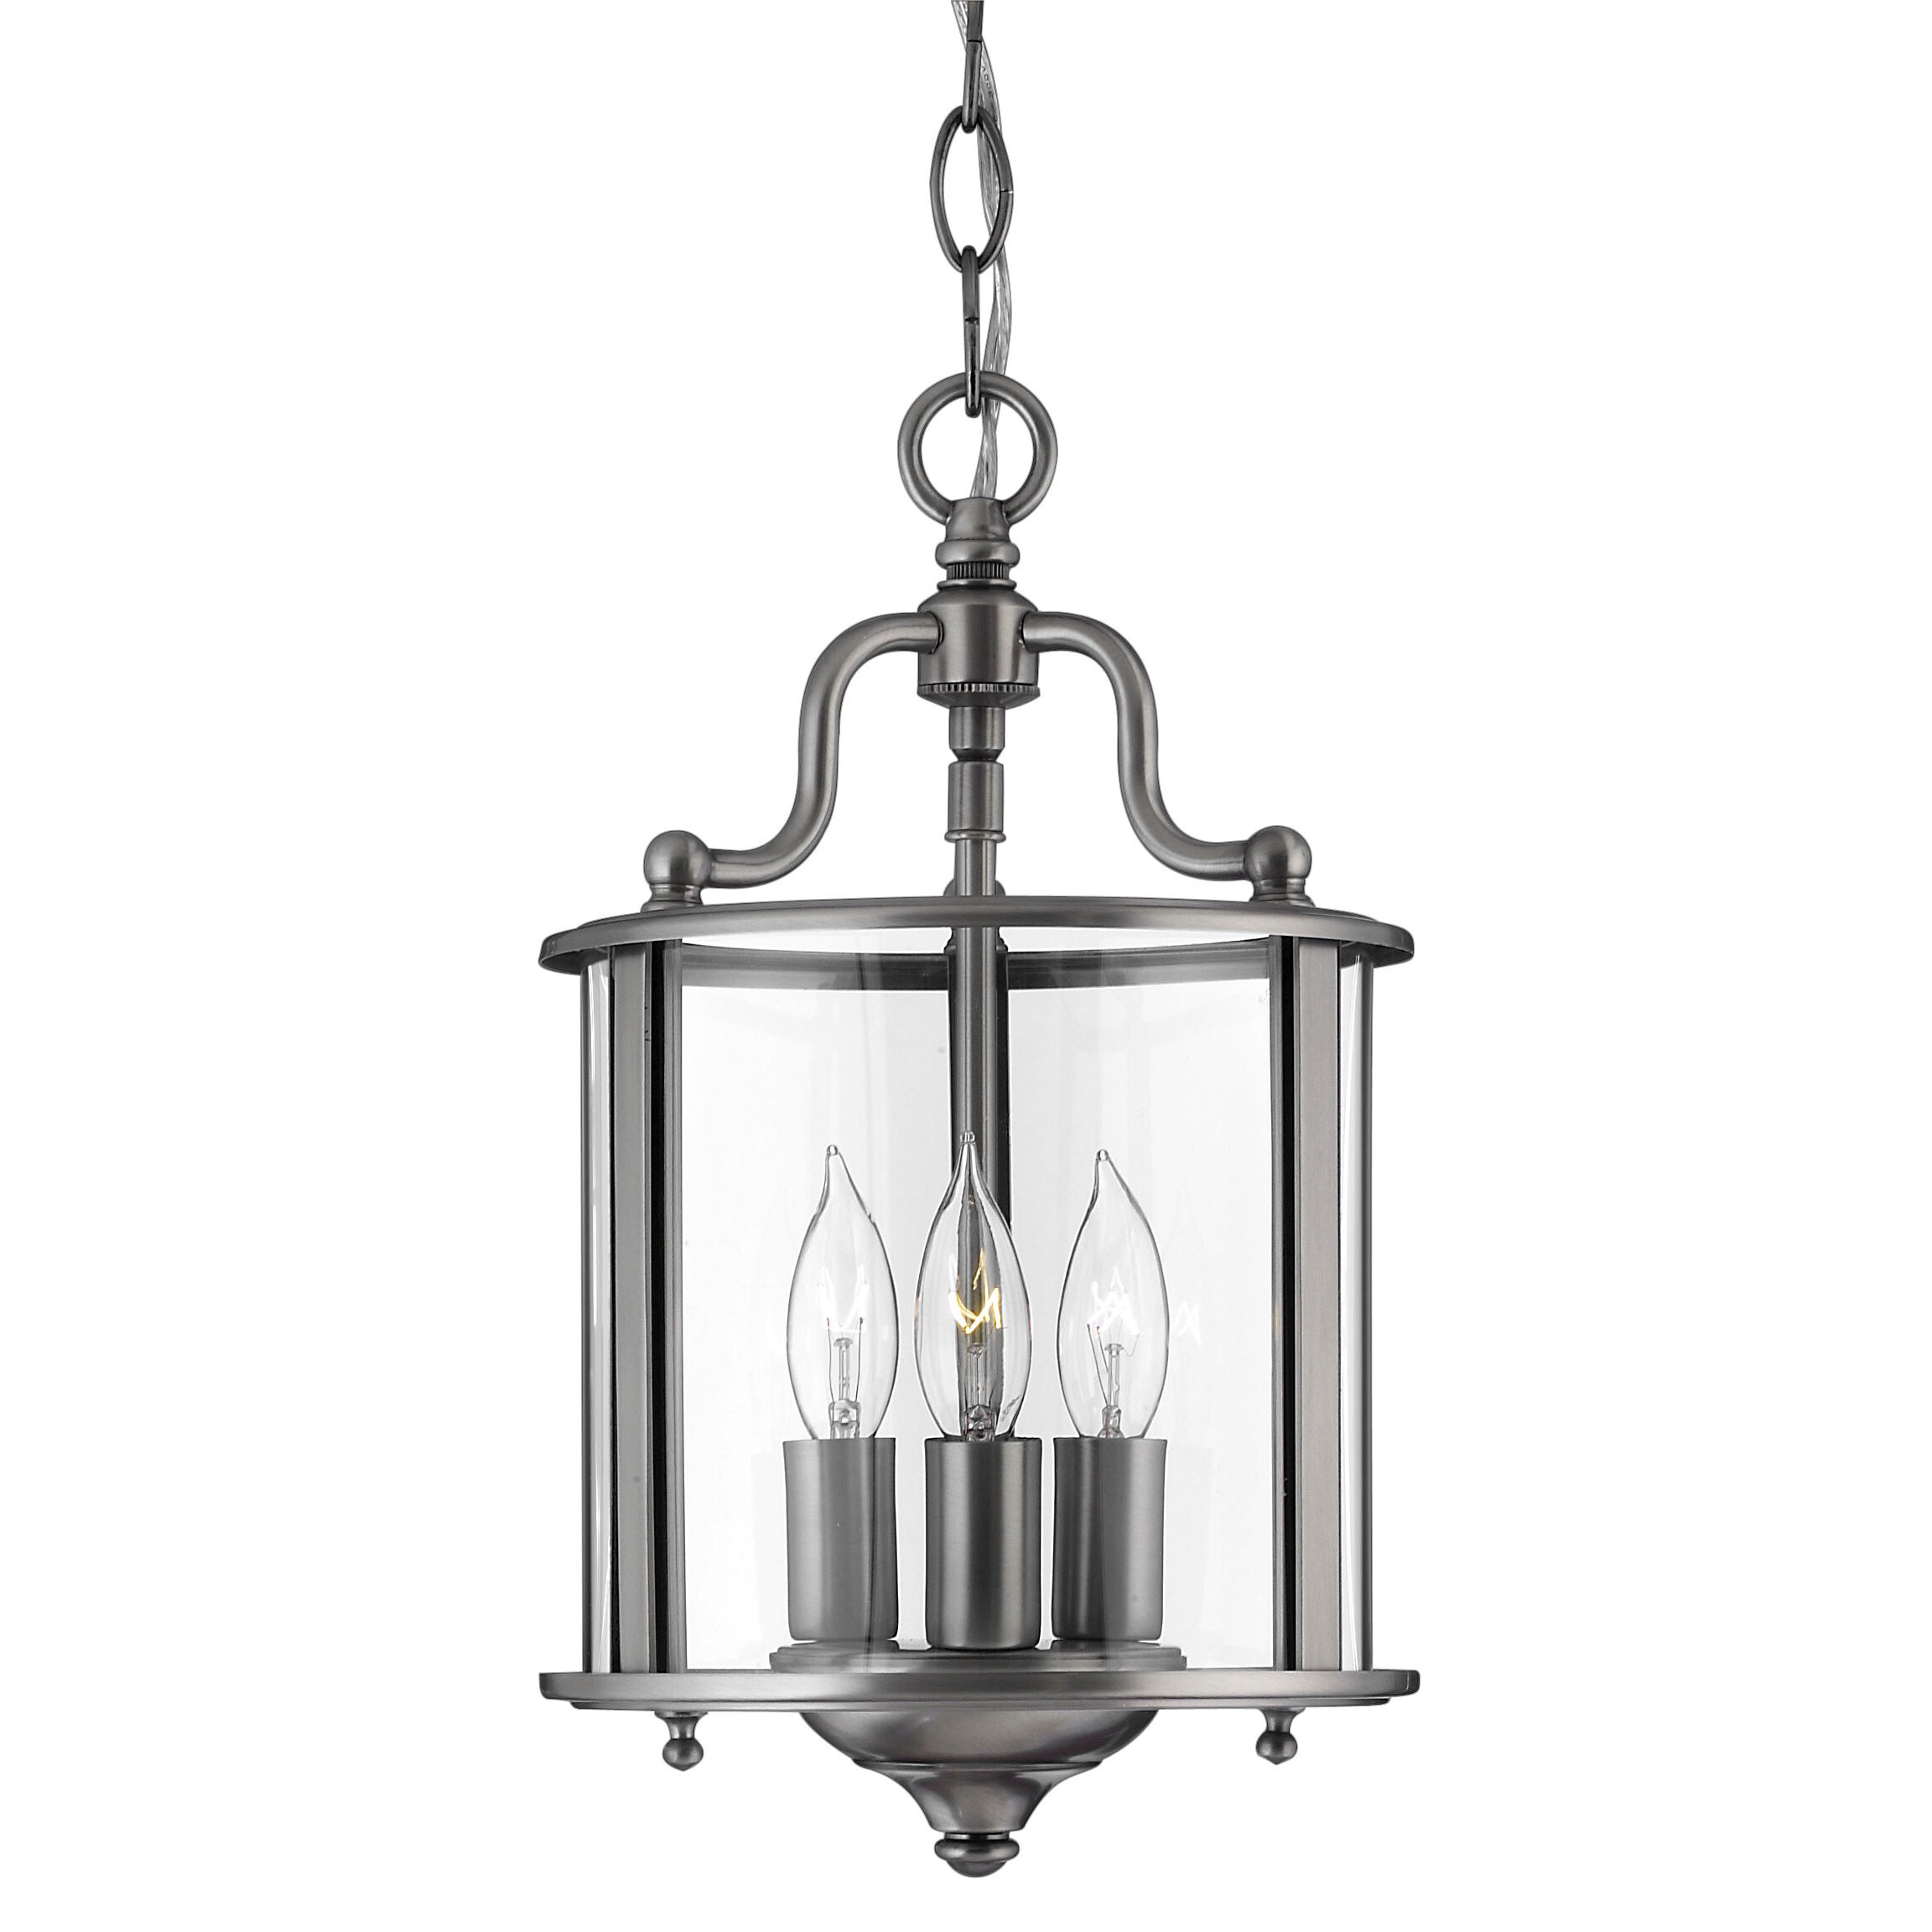 Foyer Lighting Sale : Hinkley lighting gentry light foyer pendant reviews